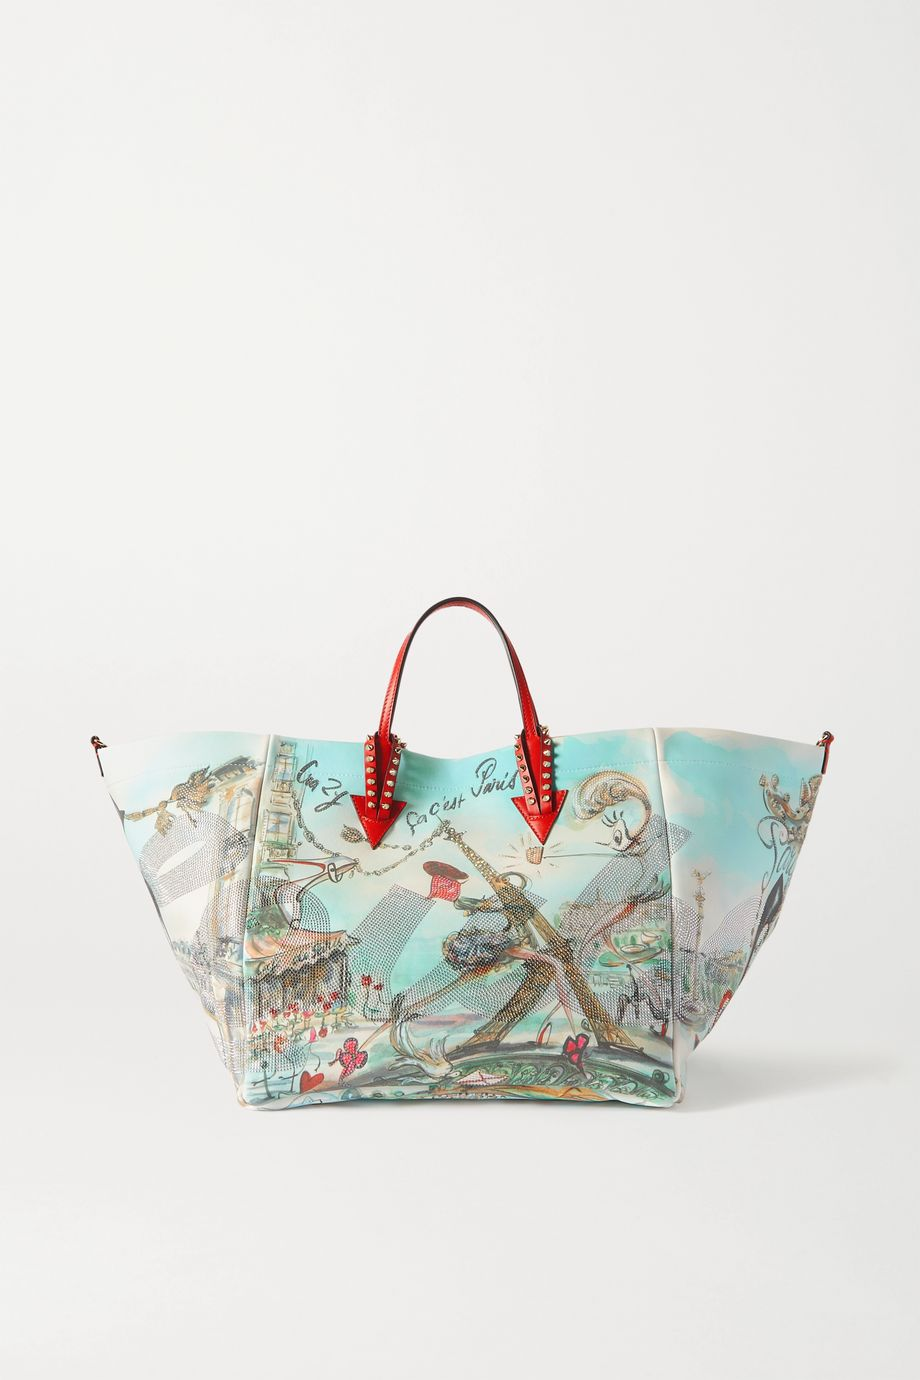 Christian Louboutin Cabaraparis large embellished leather-trimmed printed canvas tote